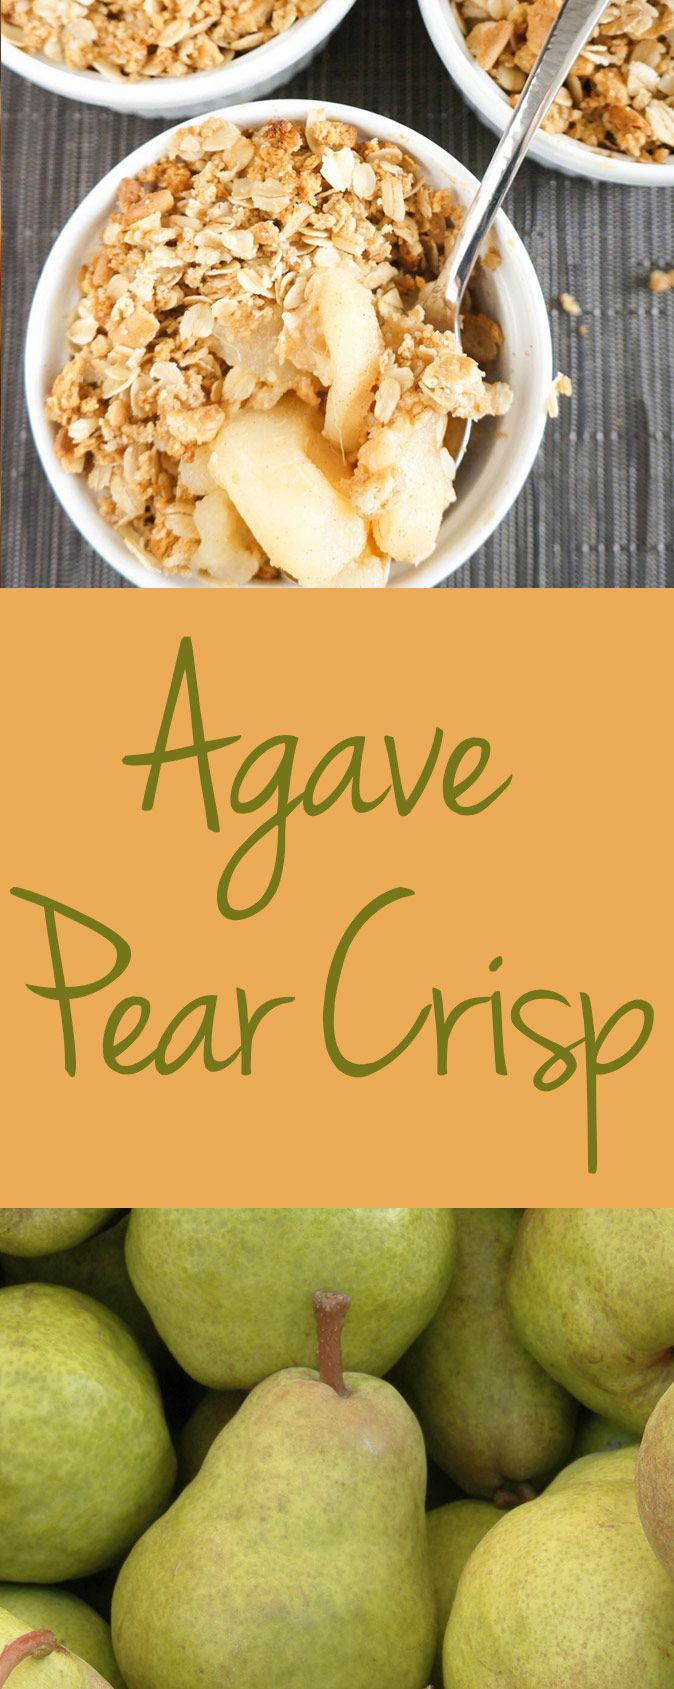 14 best latin vegan recipes images on pinterest vegan recipes a latin recipe for an agave pear crisp a quick and easy thanksgiving and holiday dessert forumfinder Choice Image